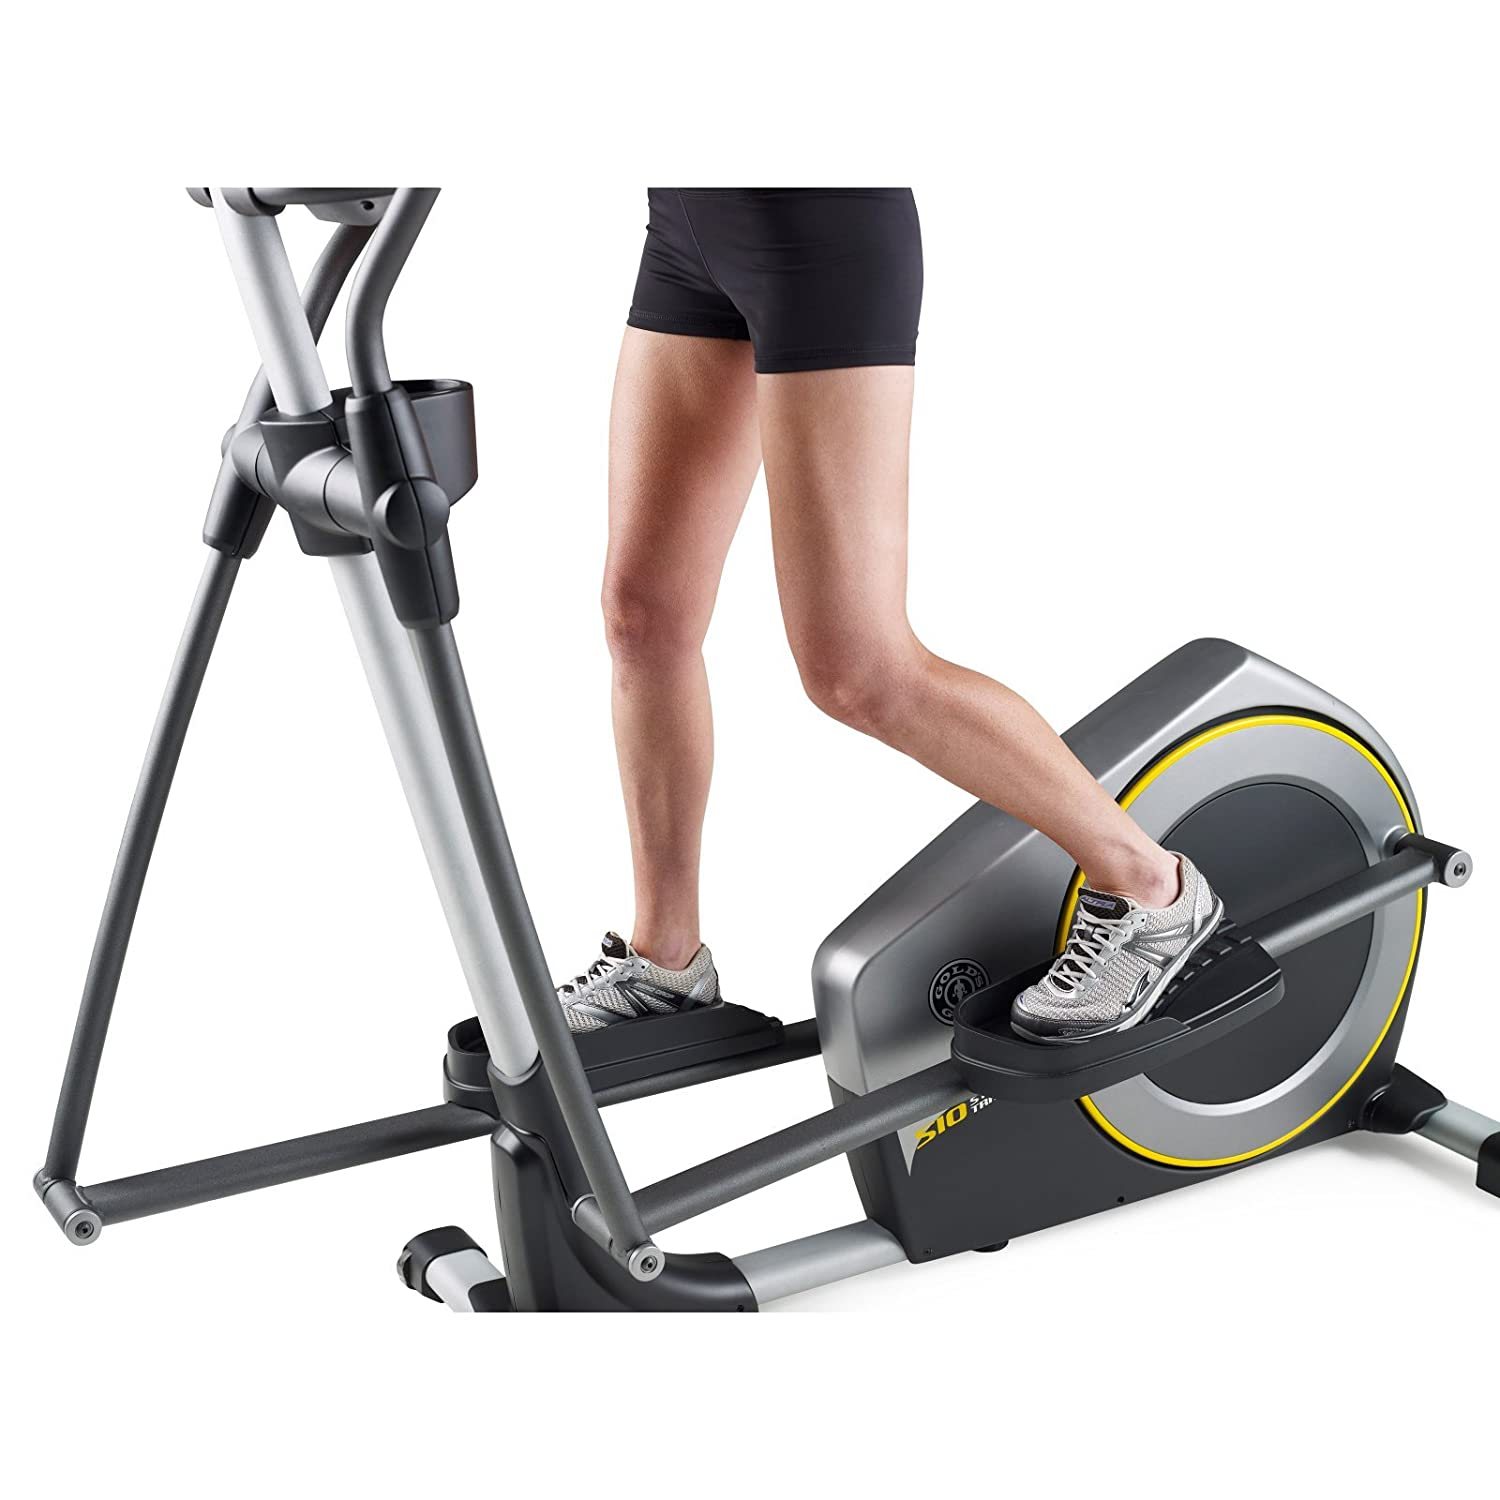 Amazon.com : Golds Gym GGEL63812 Elliptical Stride Trainer 510 : Sports & Outdoors